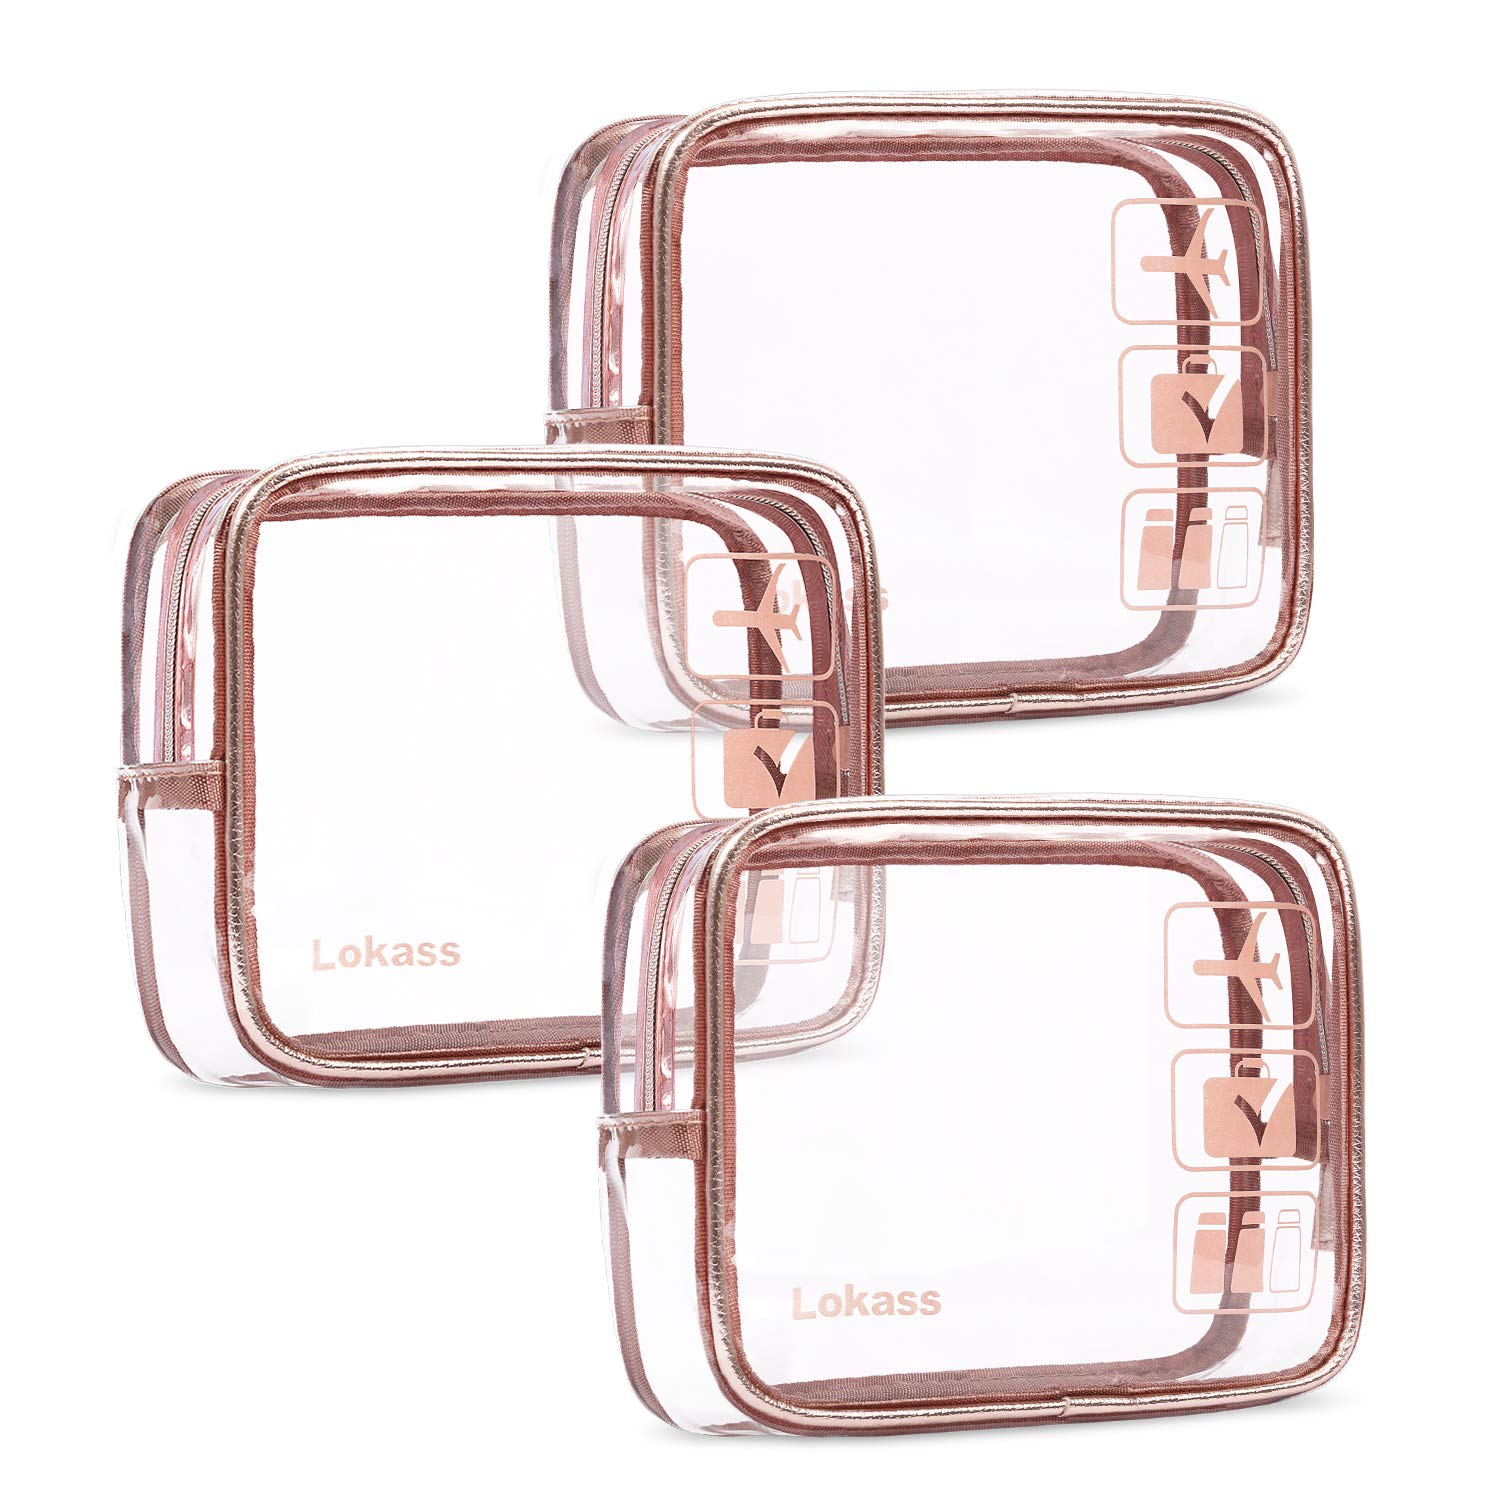 NiceEbag TSA Approved Toiletry Bag 3pcs Clear Travel Makeup Bag Set Transparent PVC Cosmetic Pouch Carry On Airport Airline Compliant Bag for Women Men Girls Boys, Quart Sized with Zipper, Rose Gold by NiceEbag